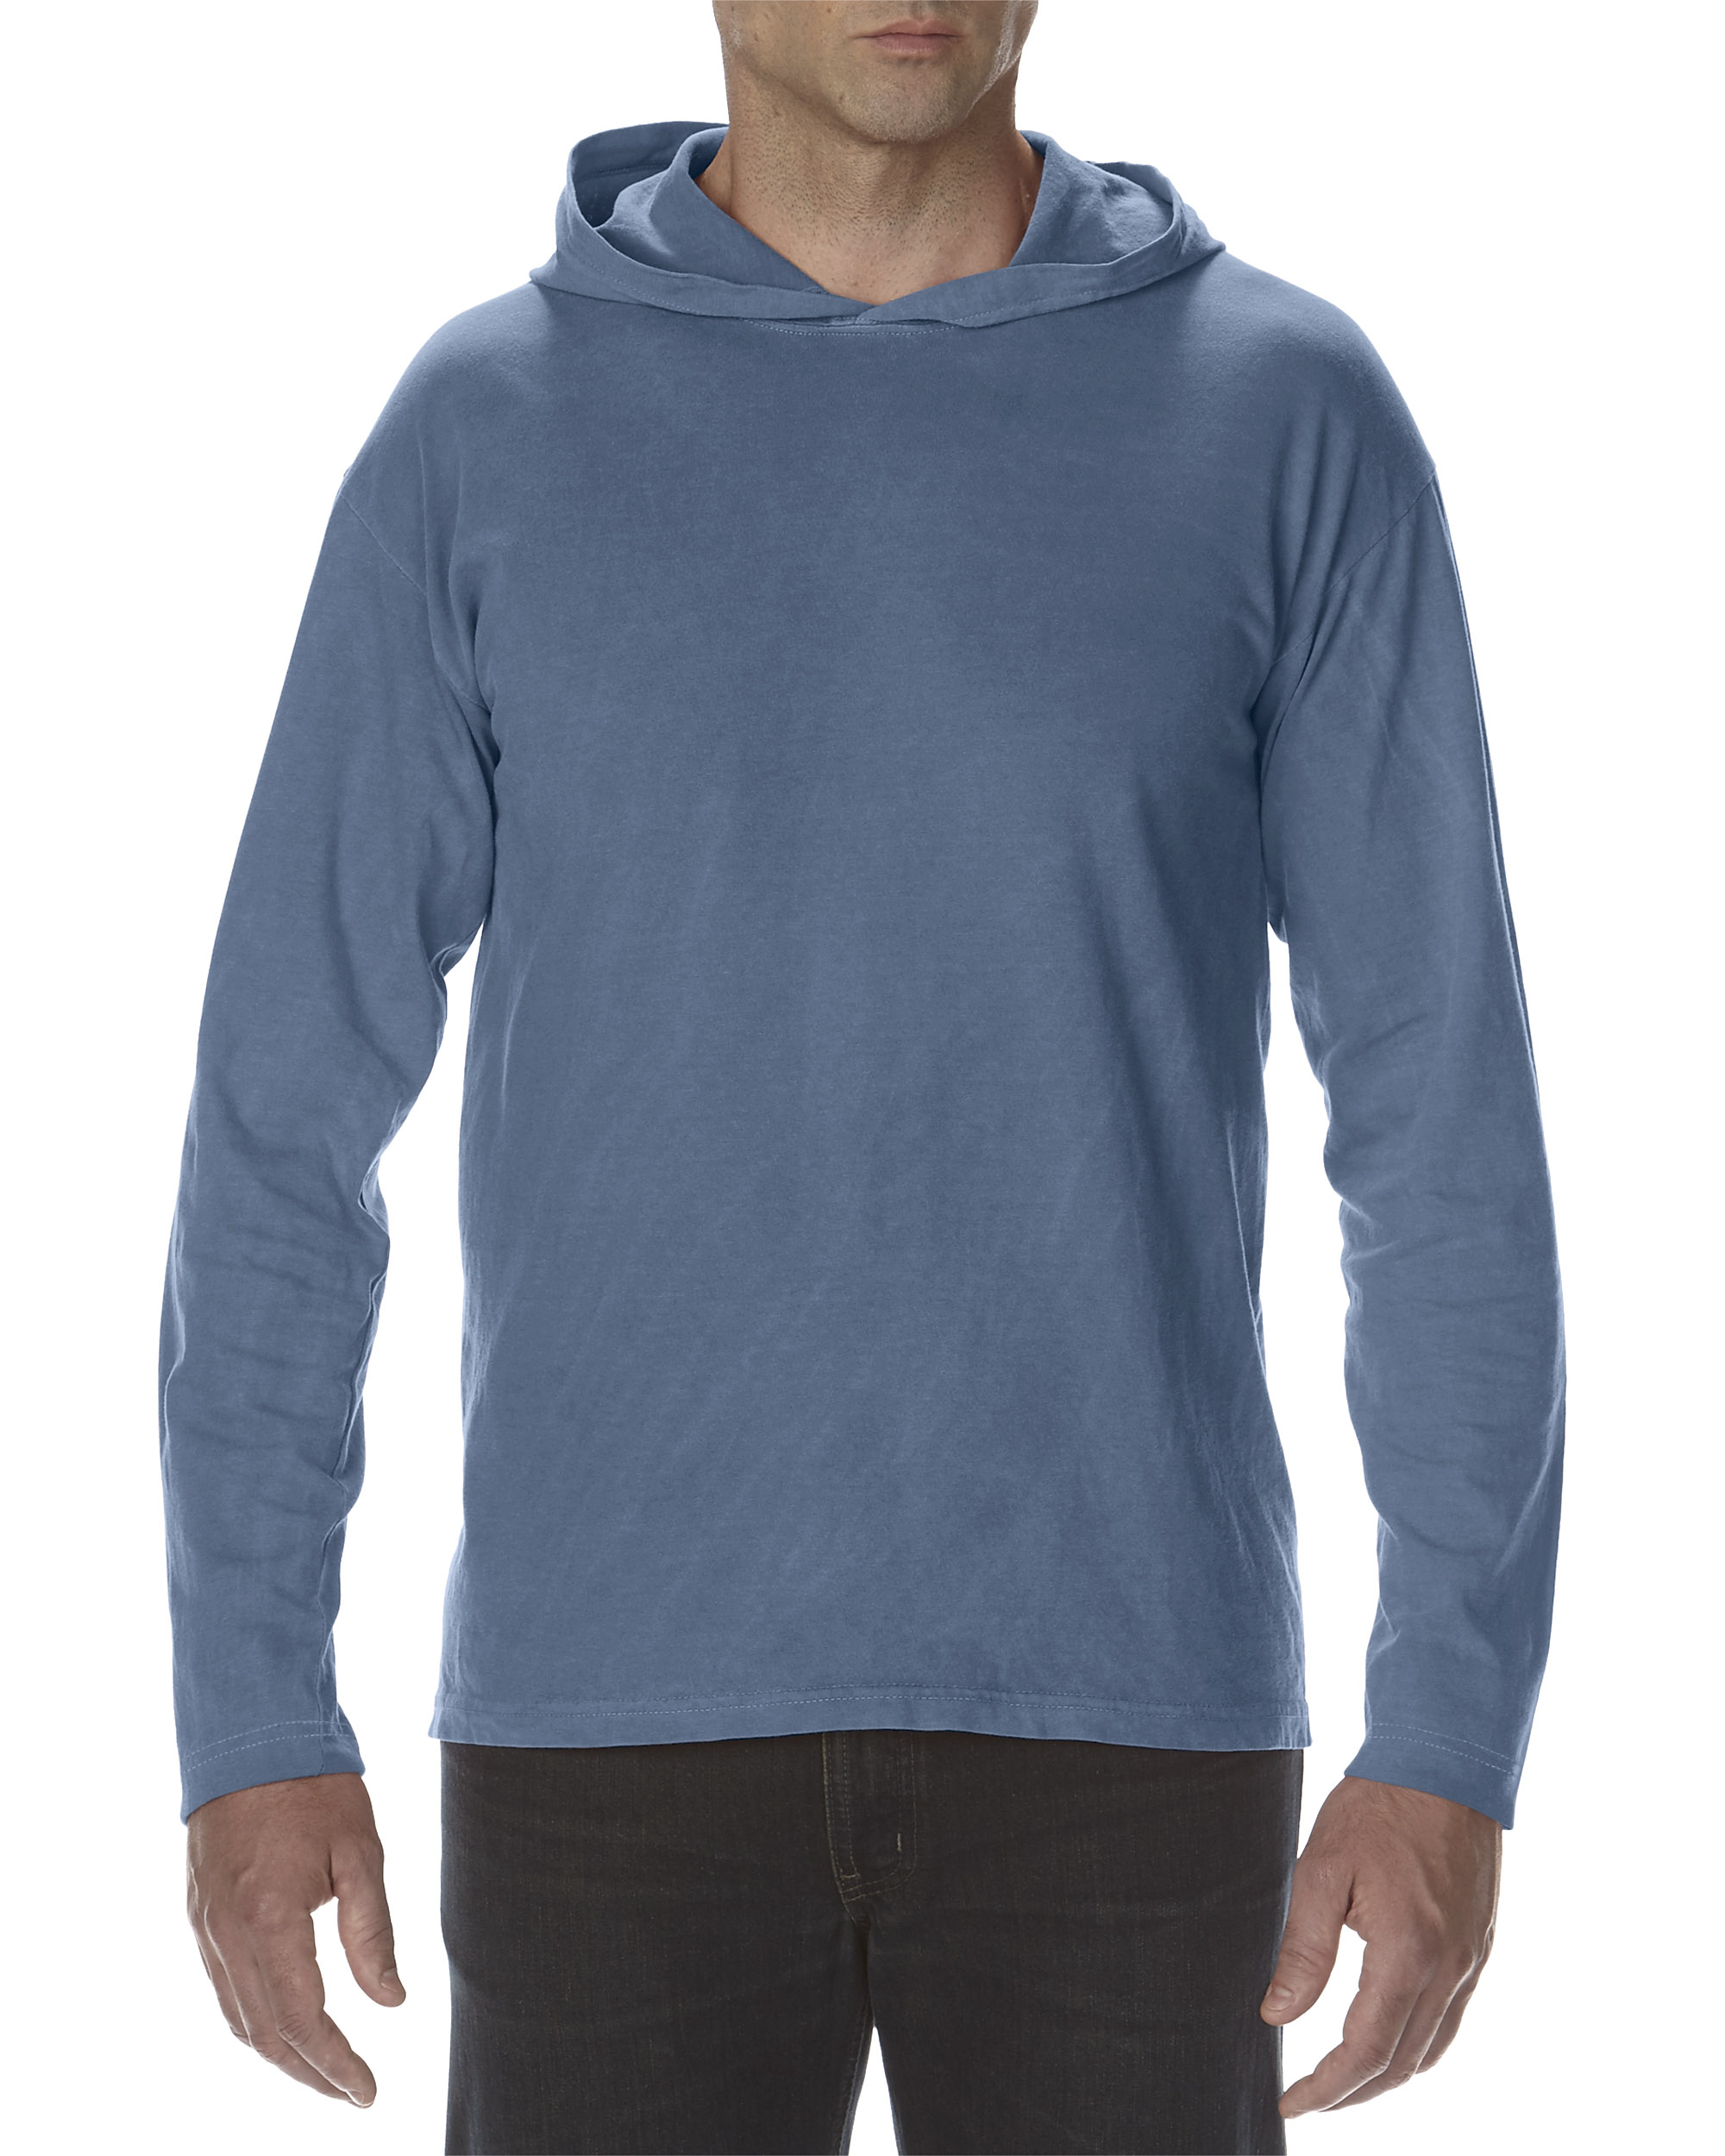 ComCol Hooded T-shirt Heavyweight LS for him